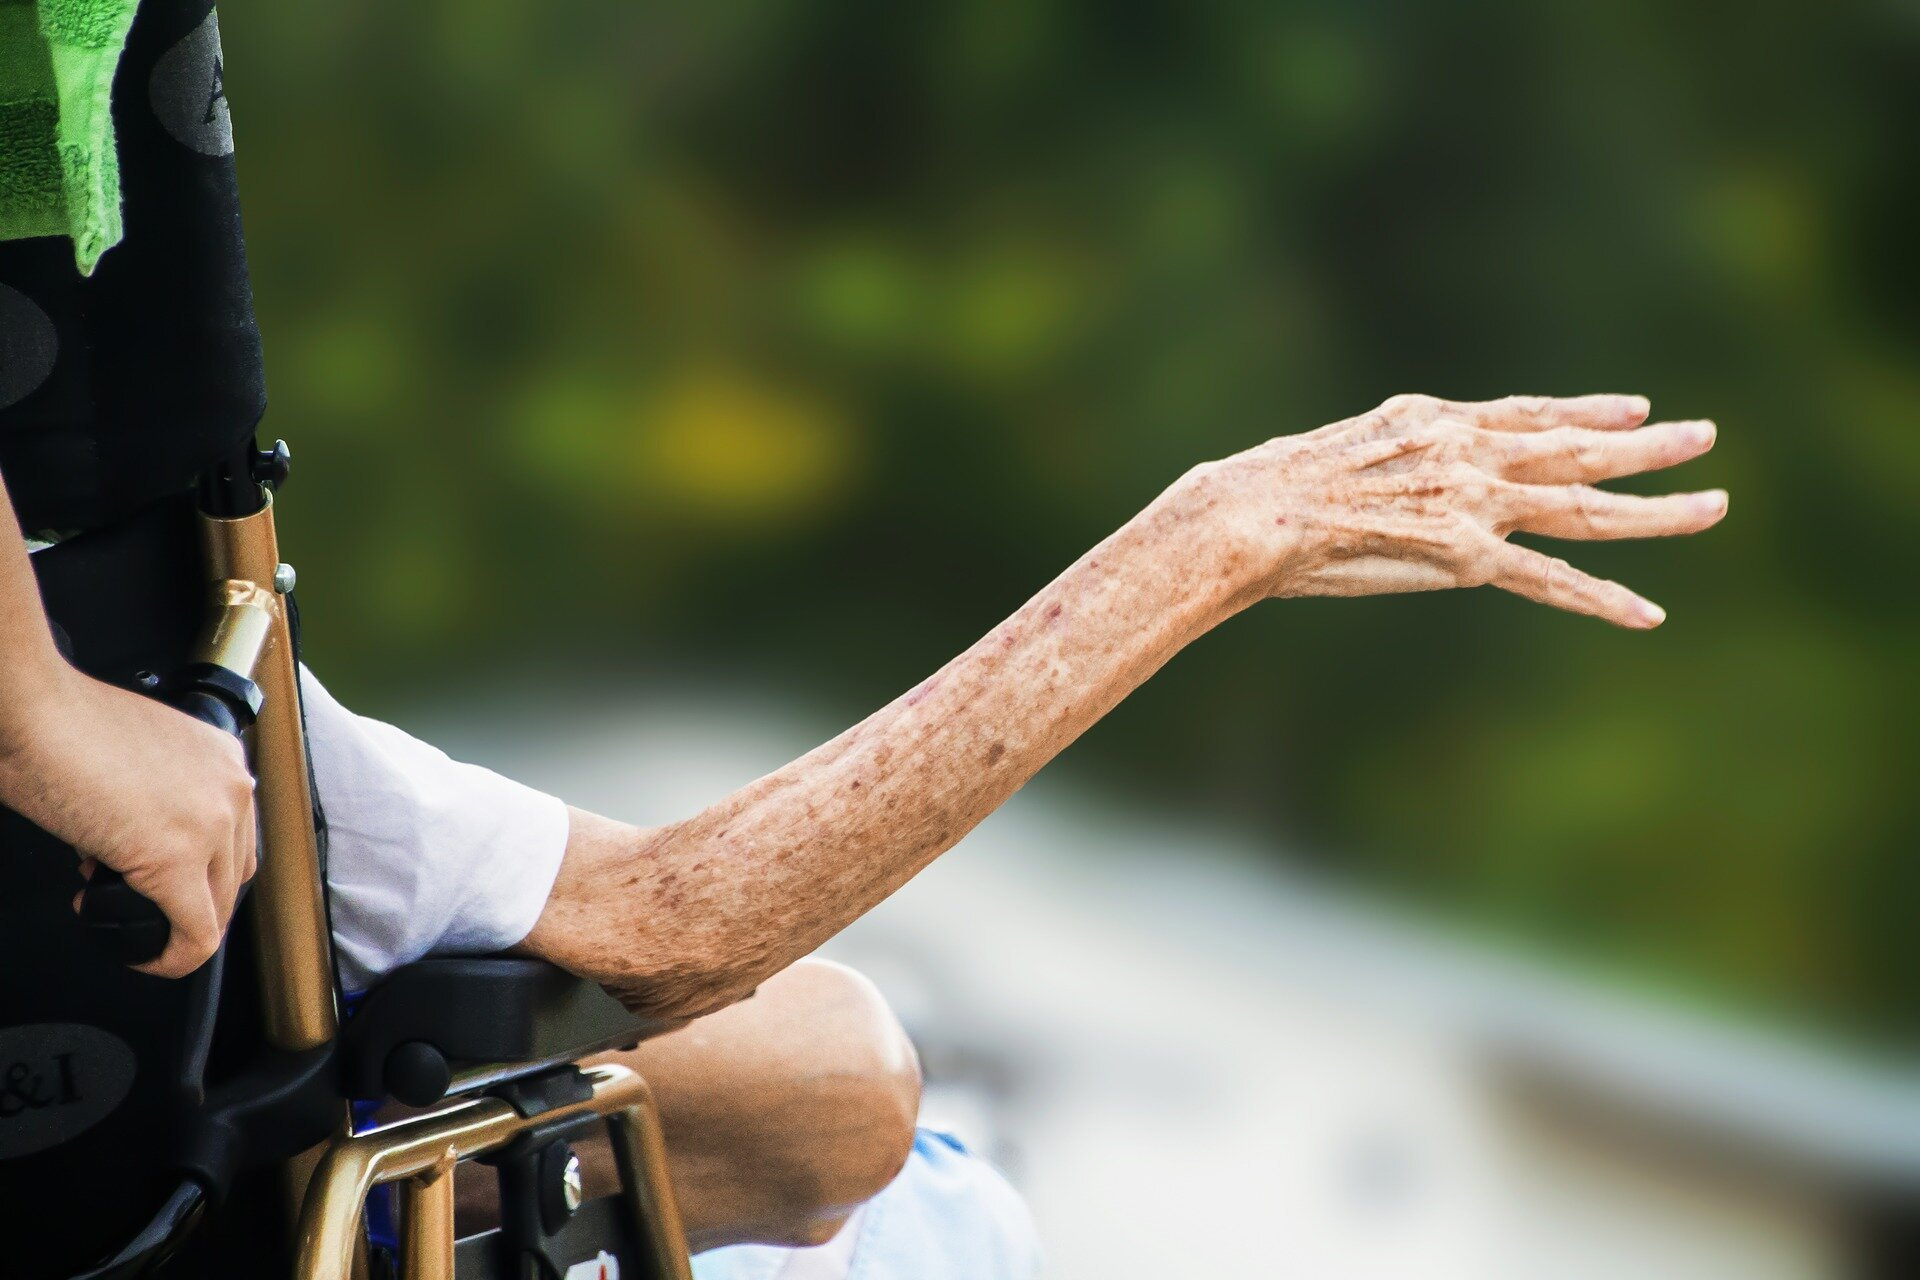 Better out-of-hours palliative care needed